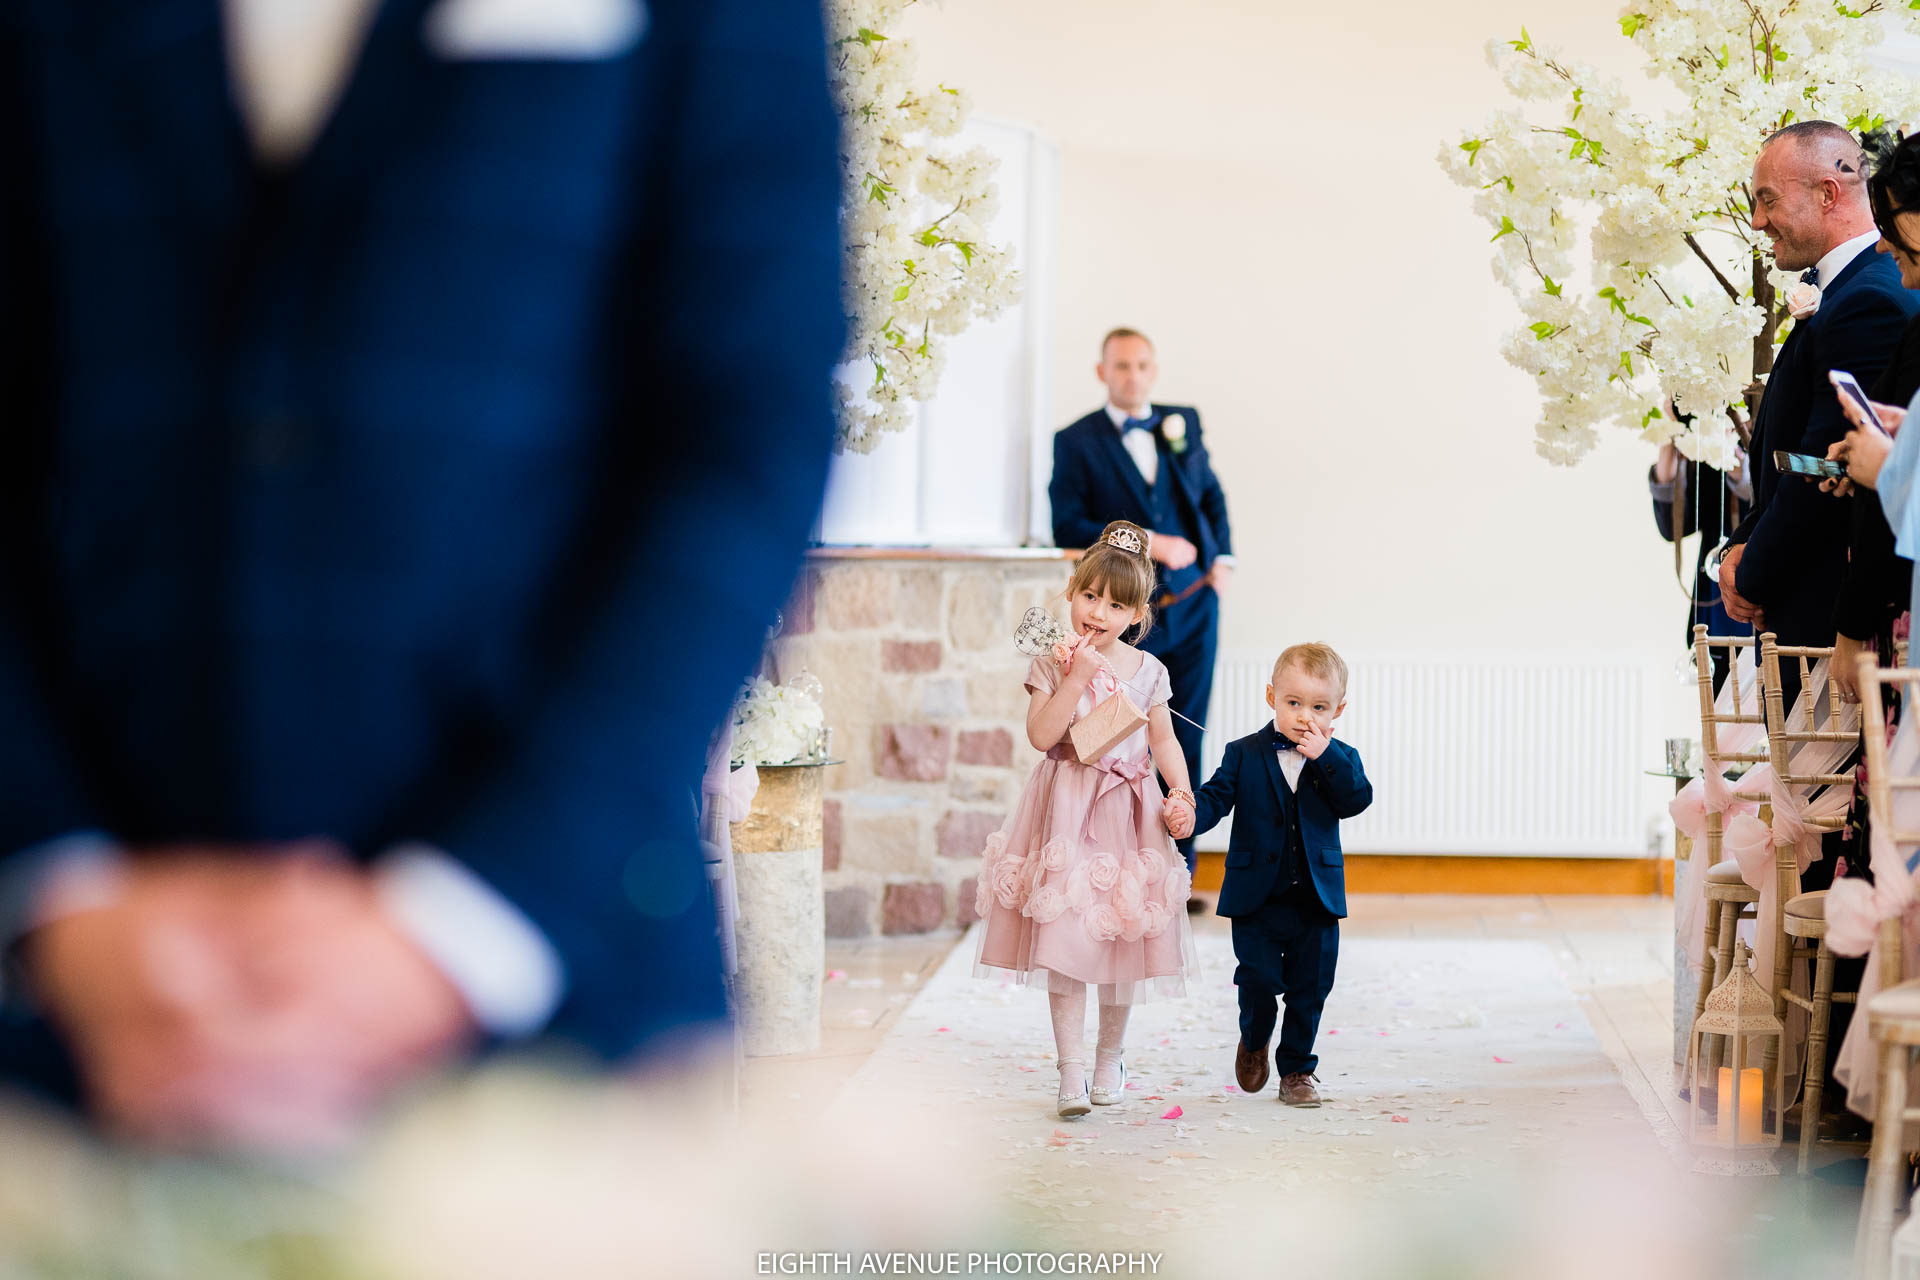 Flower girl and page boy walking down the isle